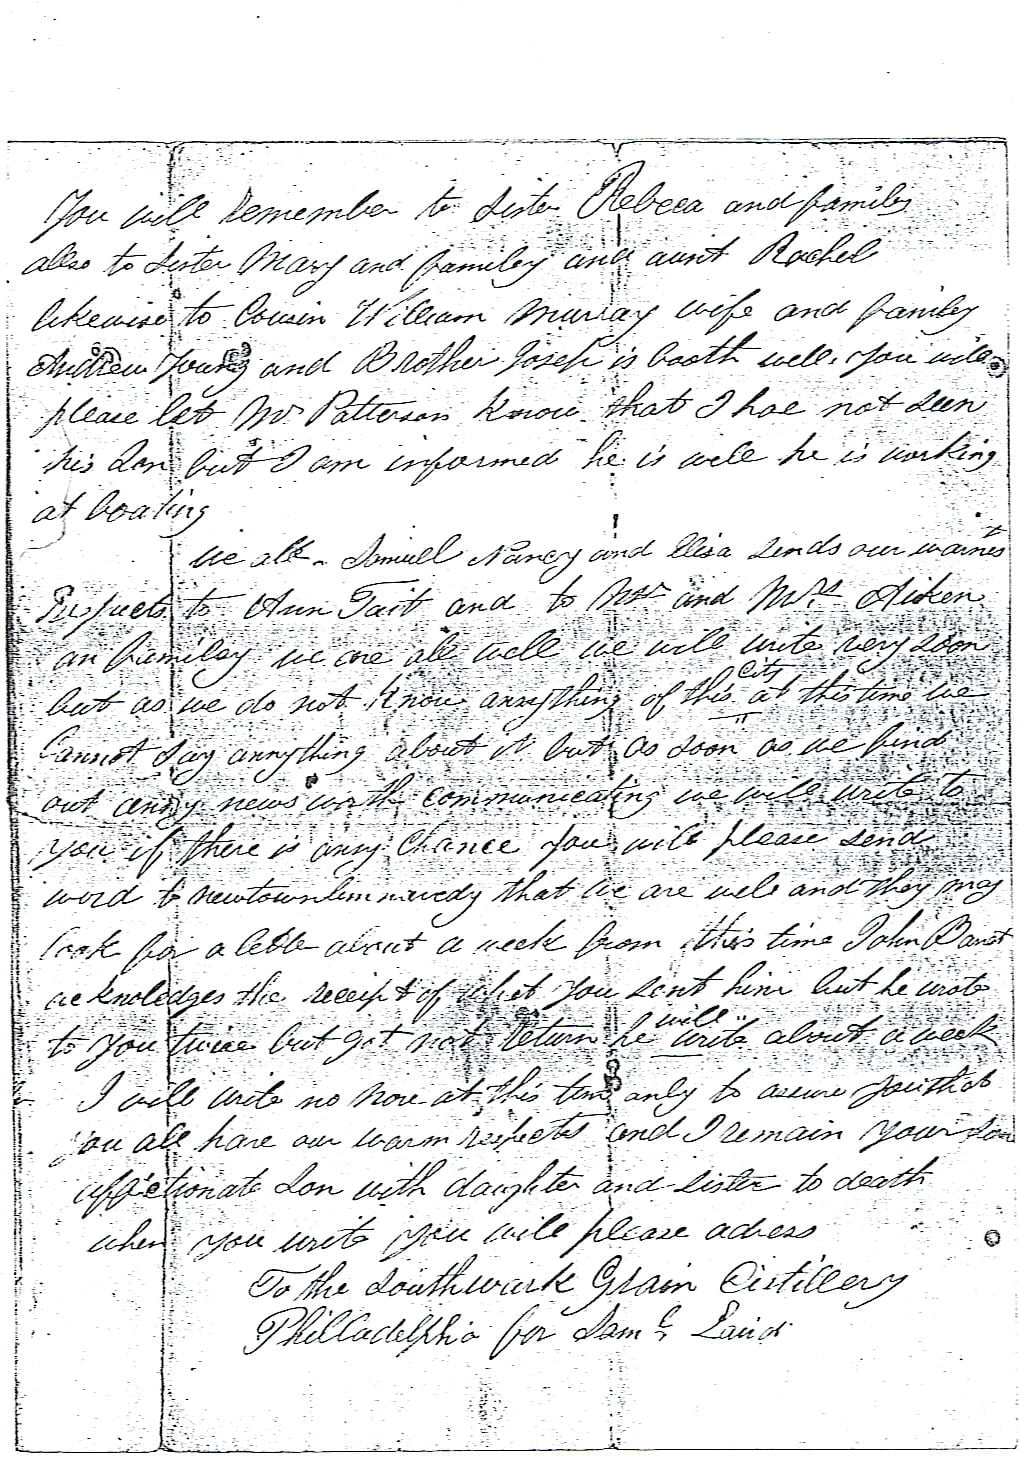 Elagh Laird - Letter 1 Page 3